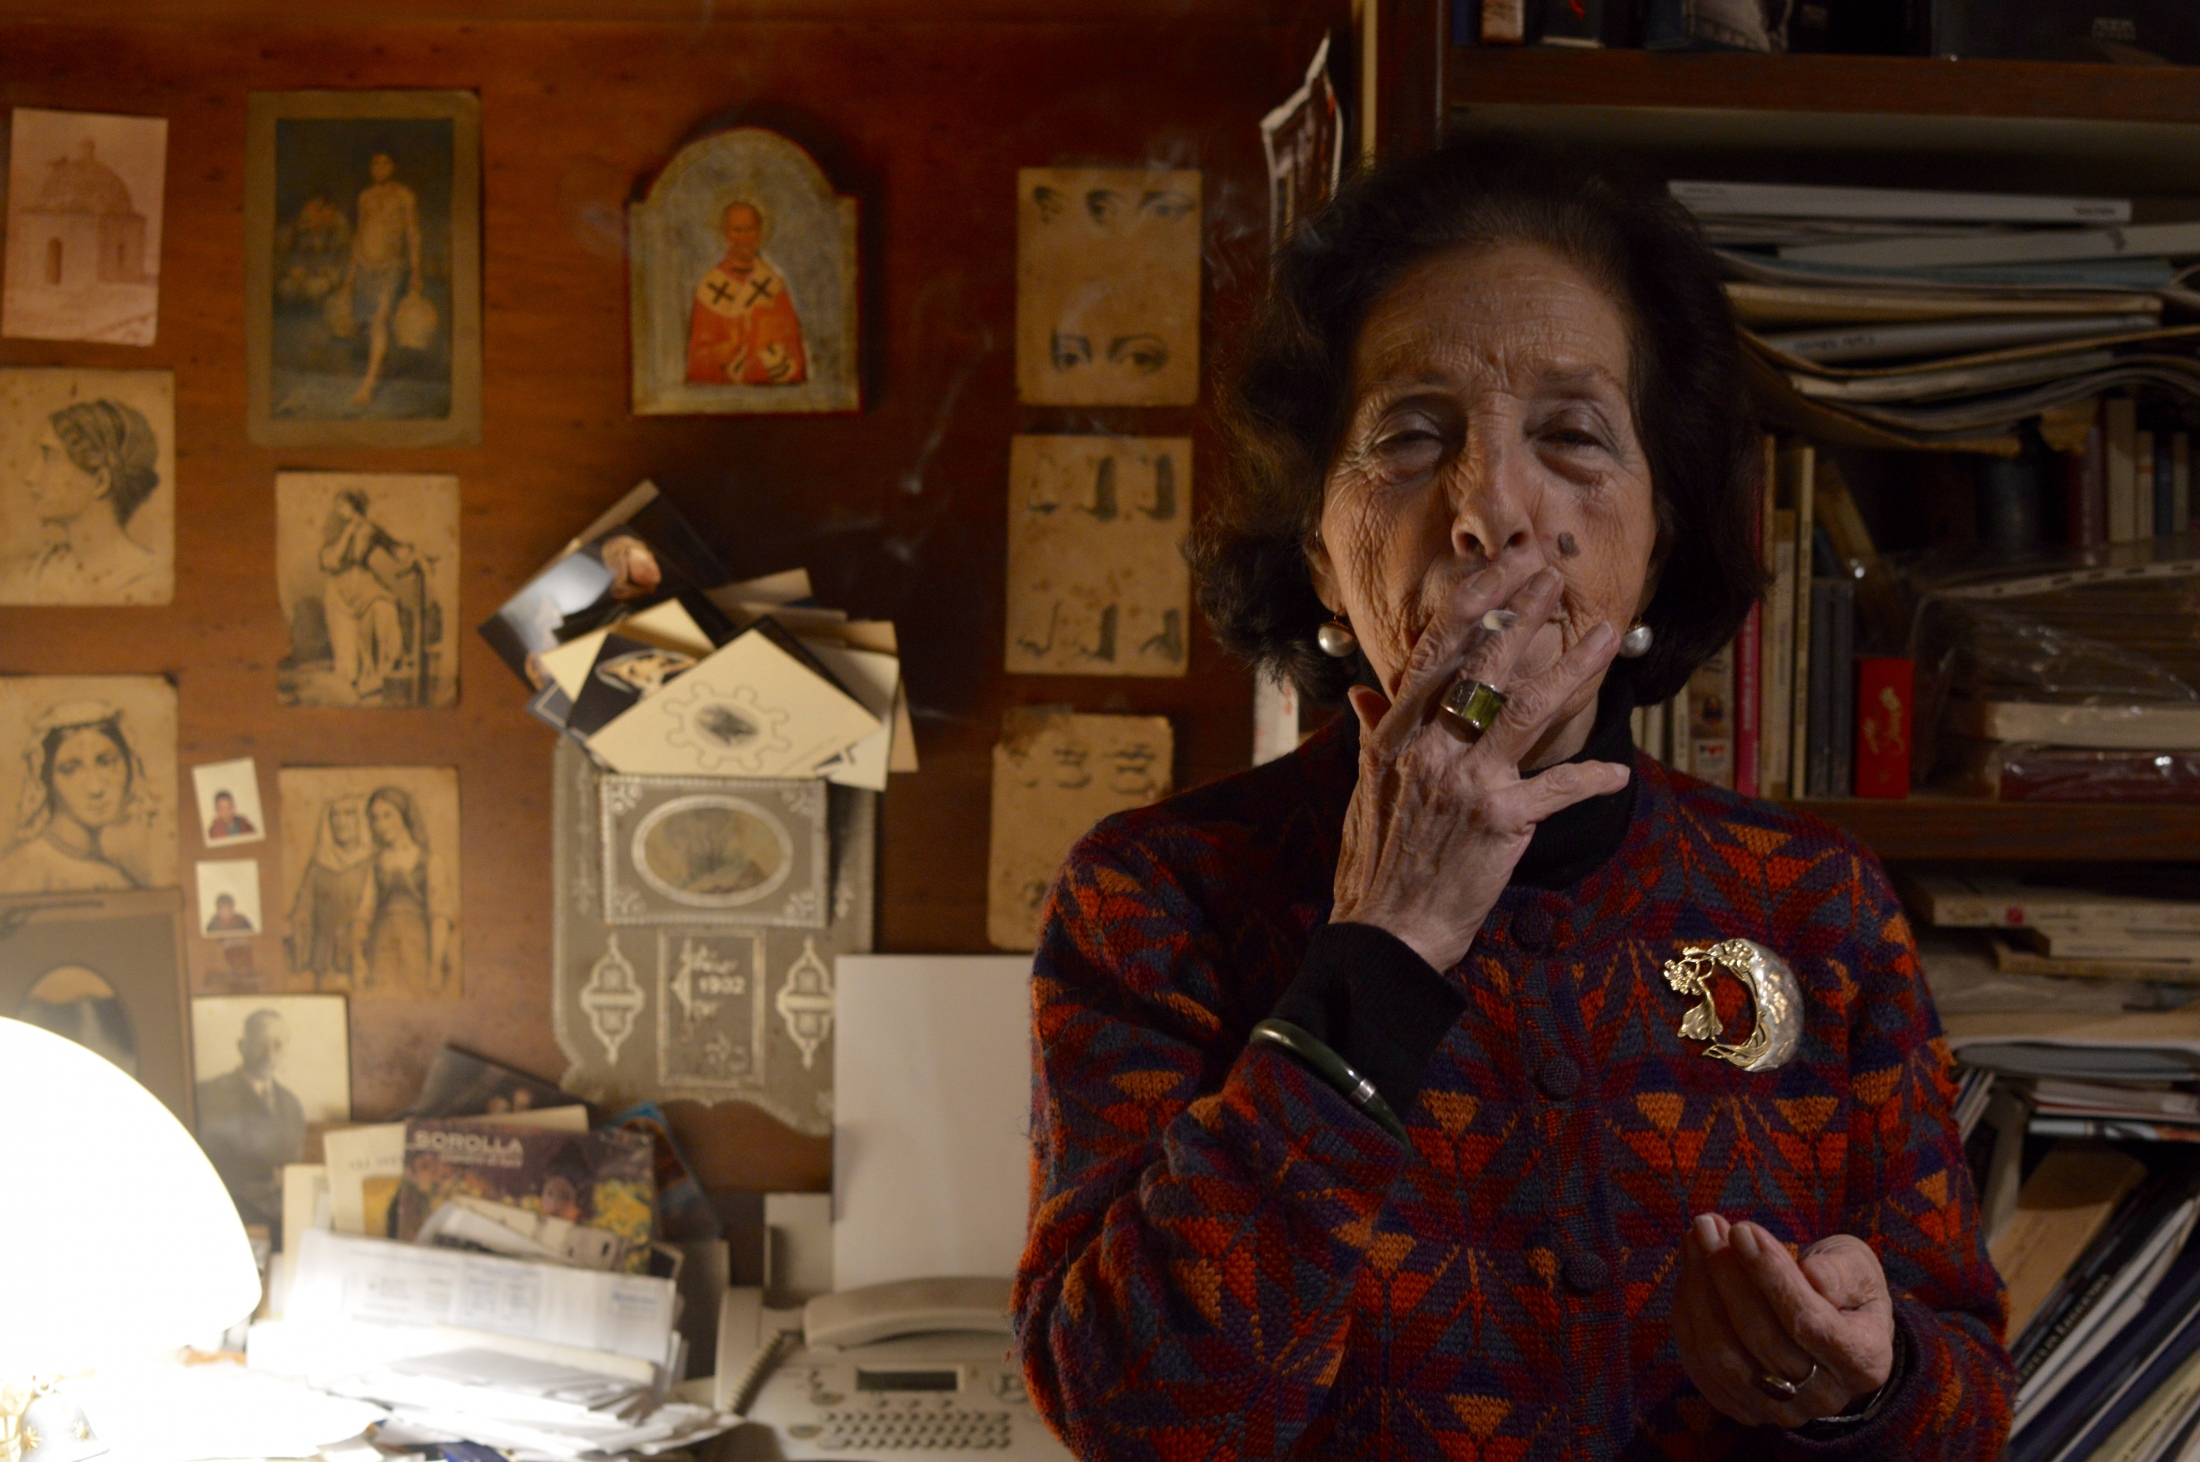 Mrs. Isabella, a 88-year-old lady who runs her little independent bookstore since 1979, smokes a cigarette as the end of a working day approaches, Bari, March 2019